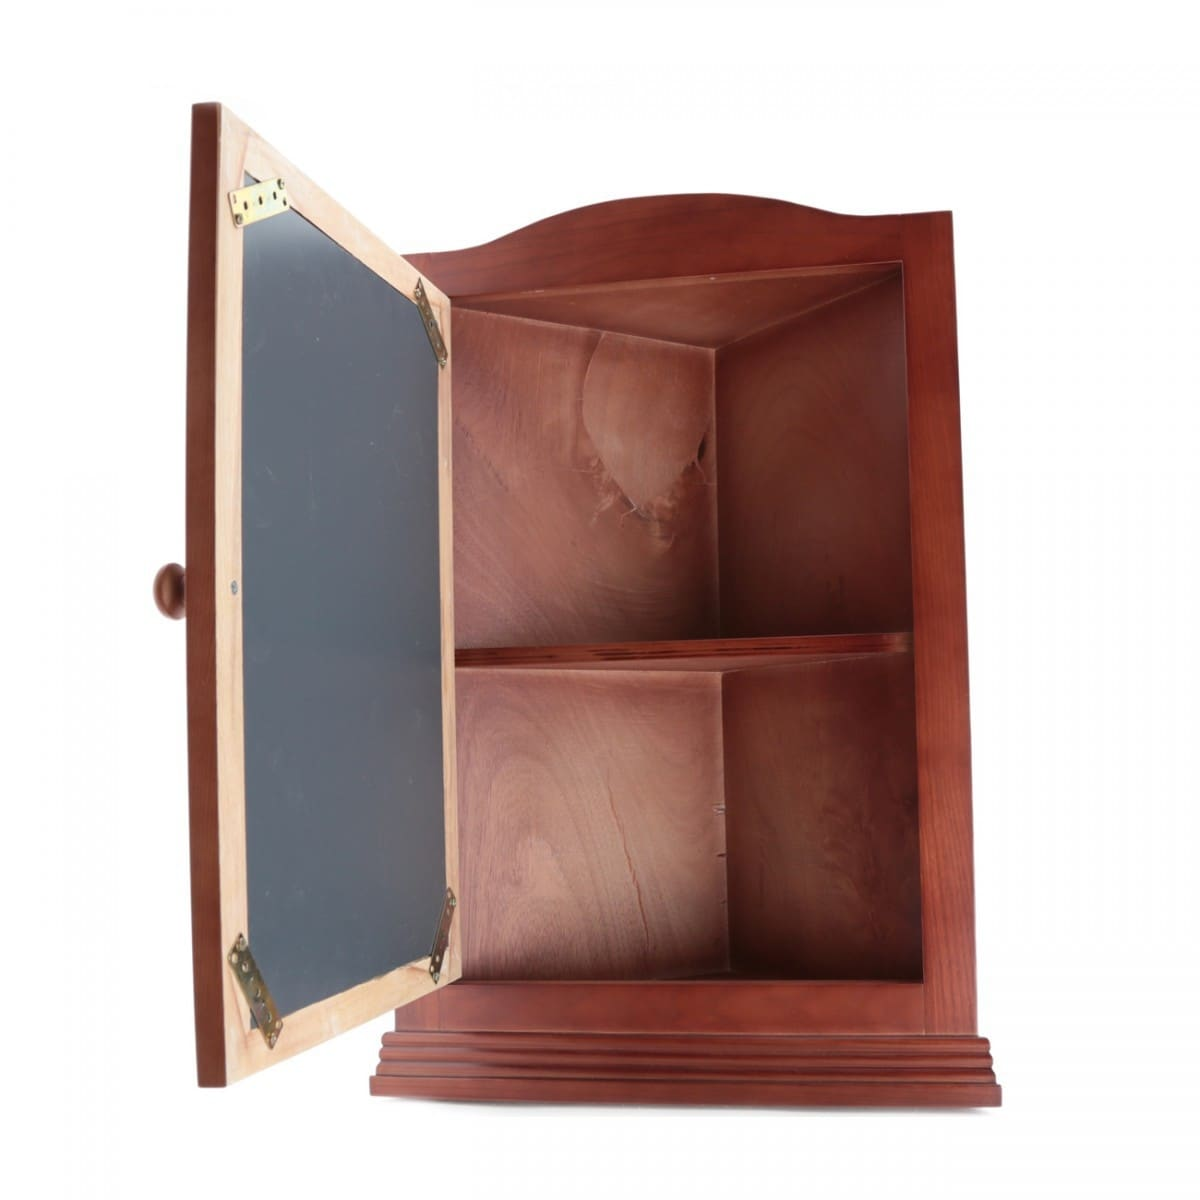 Cherry Hard Wood Mirror Medicine Cabinet Organizer Corner Wall Mount Shelves Fully Embled Renovators Supply N A